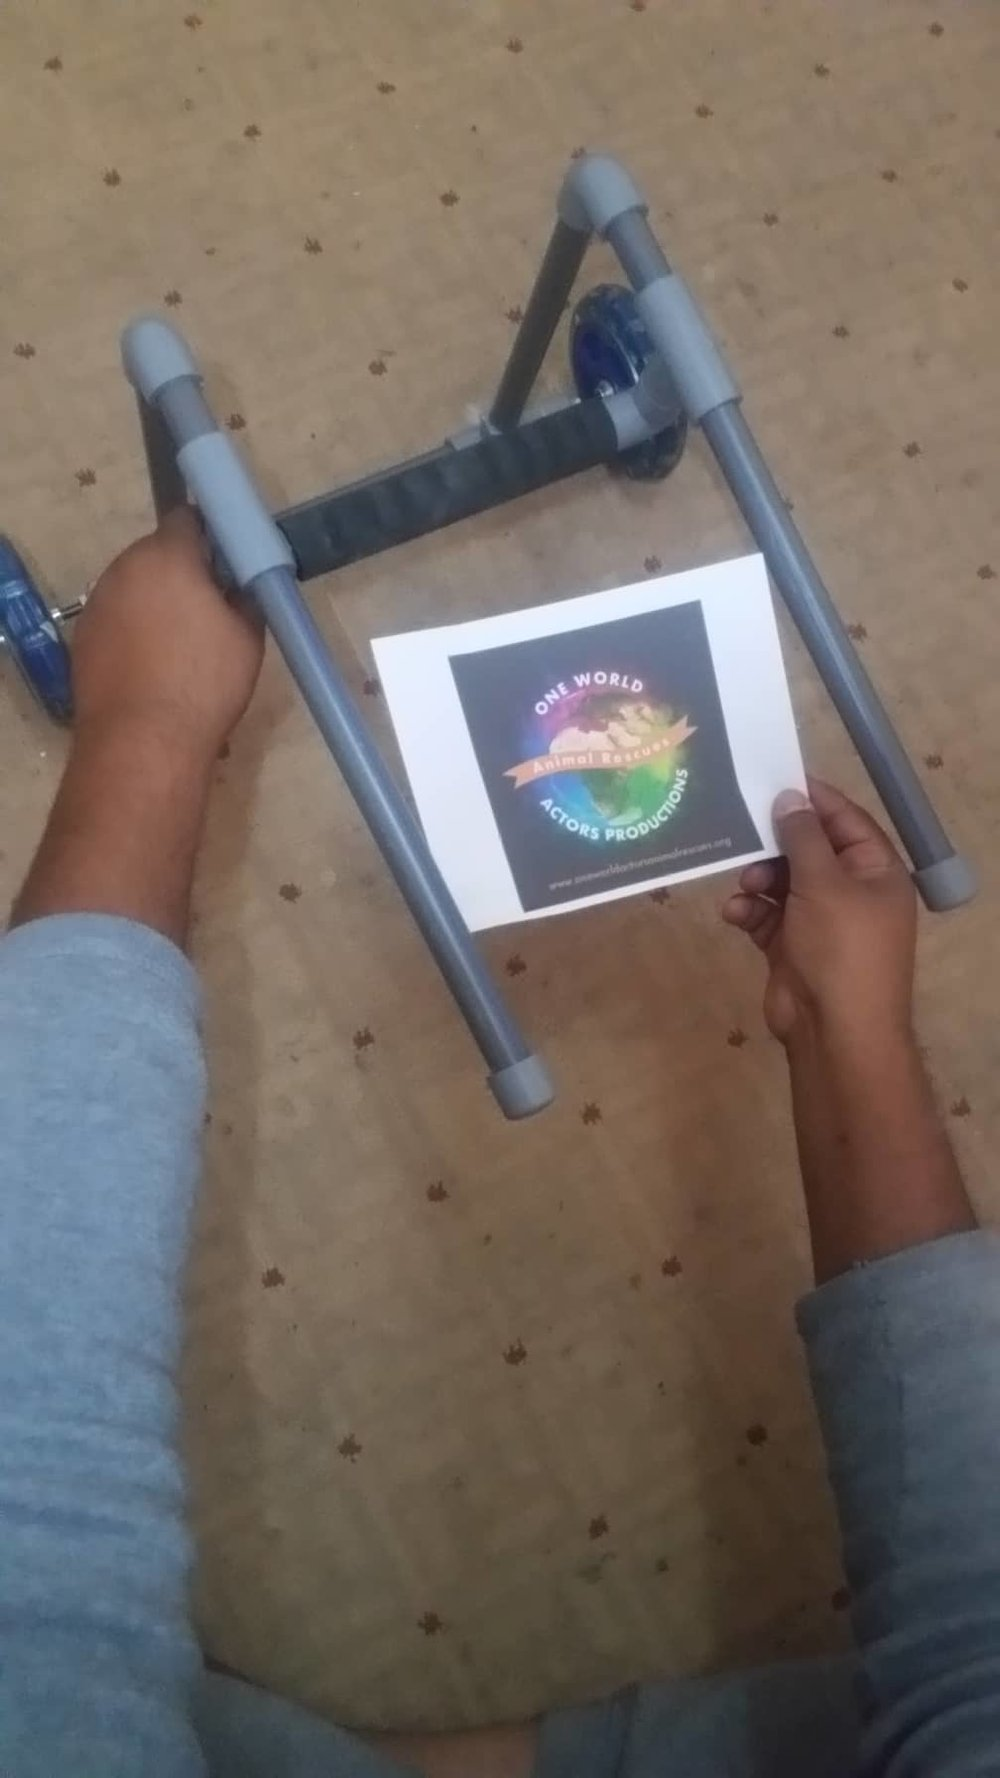 stray wheelchair made by Hisham OWAP AR 30 Jan 2019 sana'a yemen.jpg